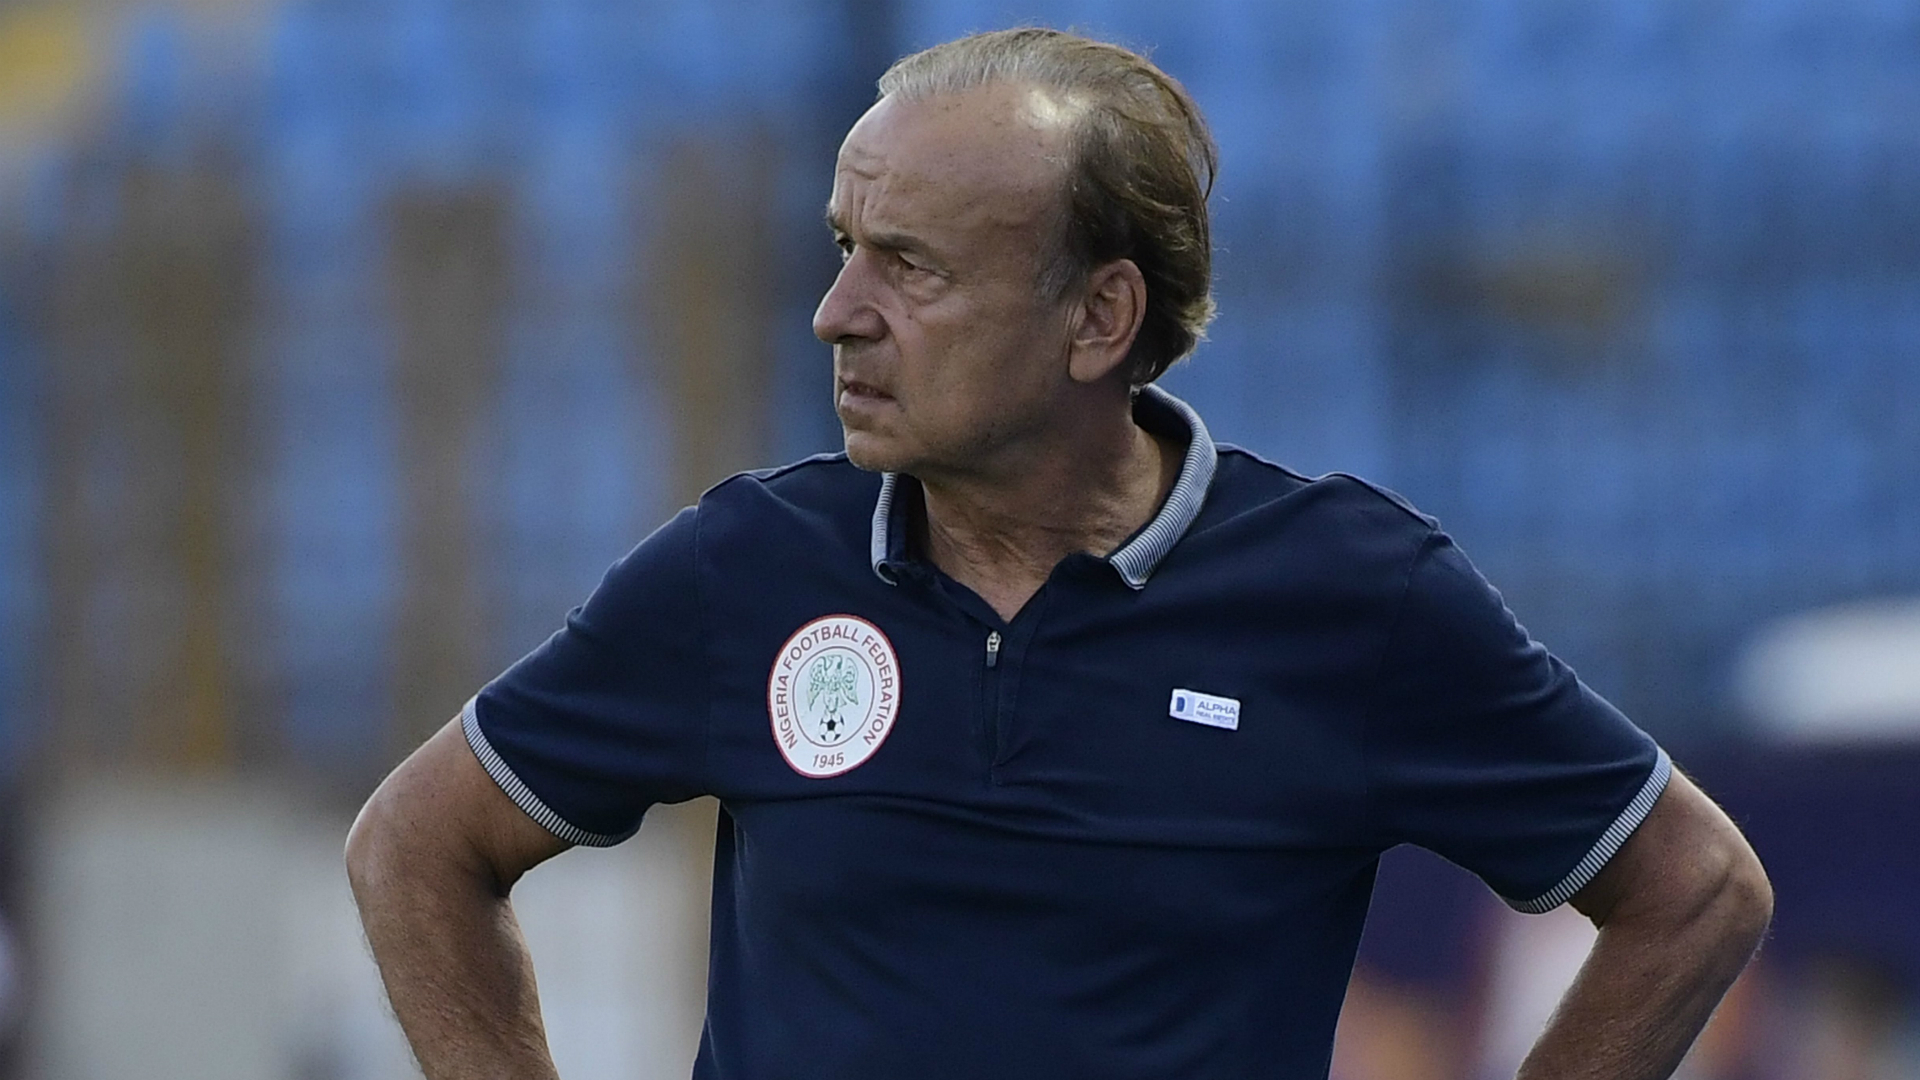 Nigeria coach Rohr displeased with Afcon qualifying schedules